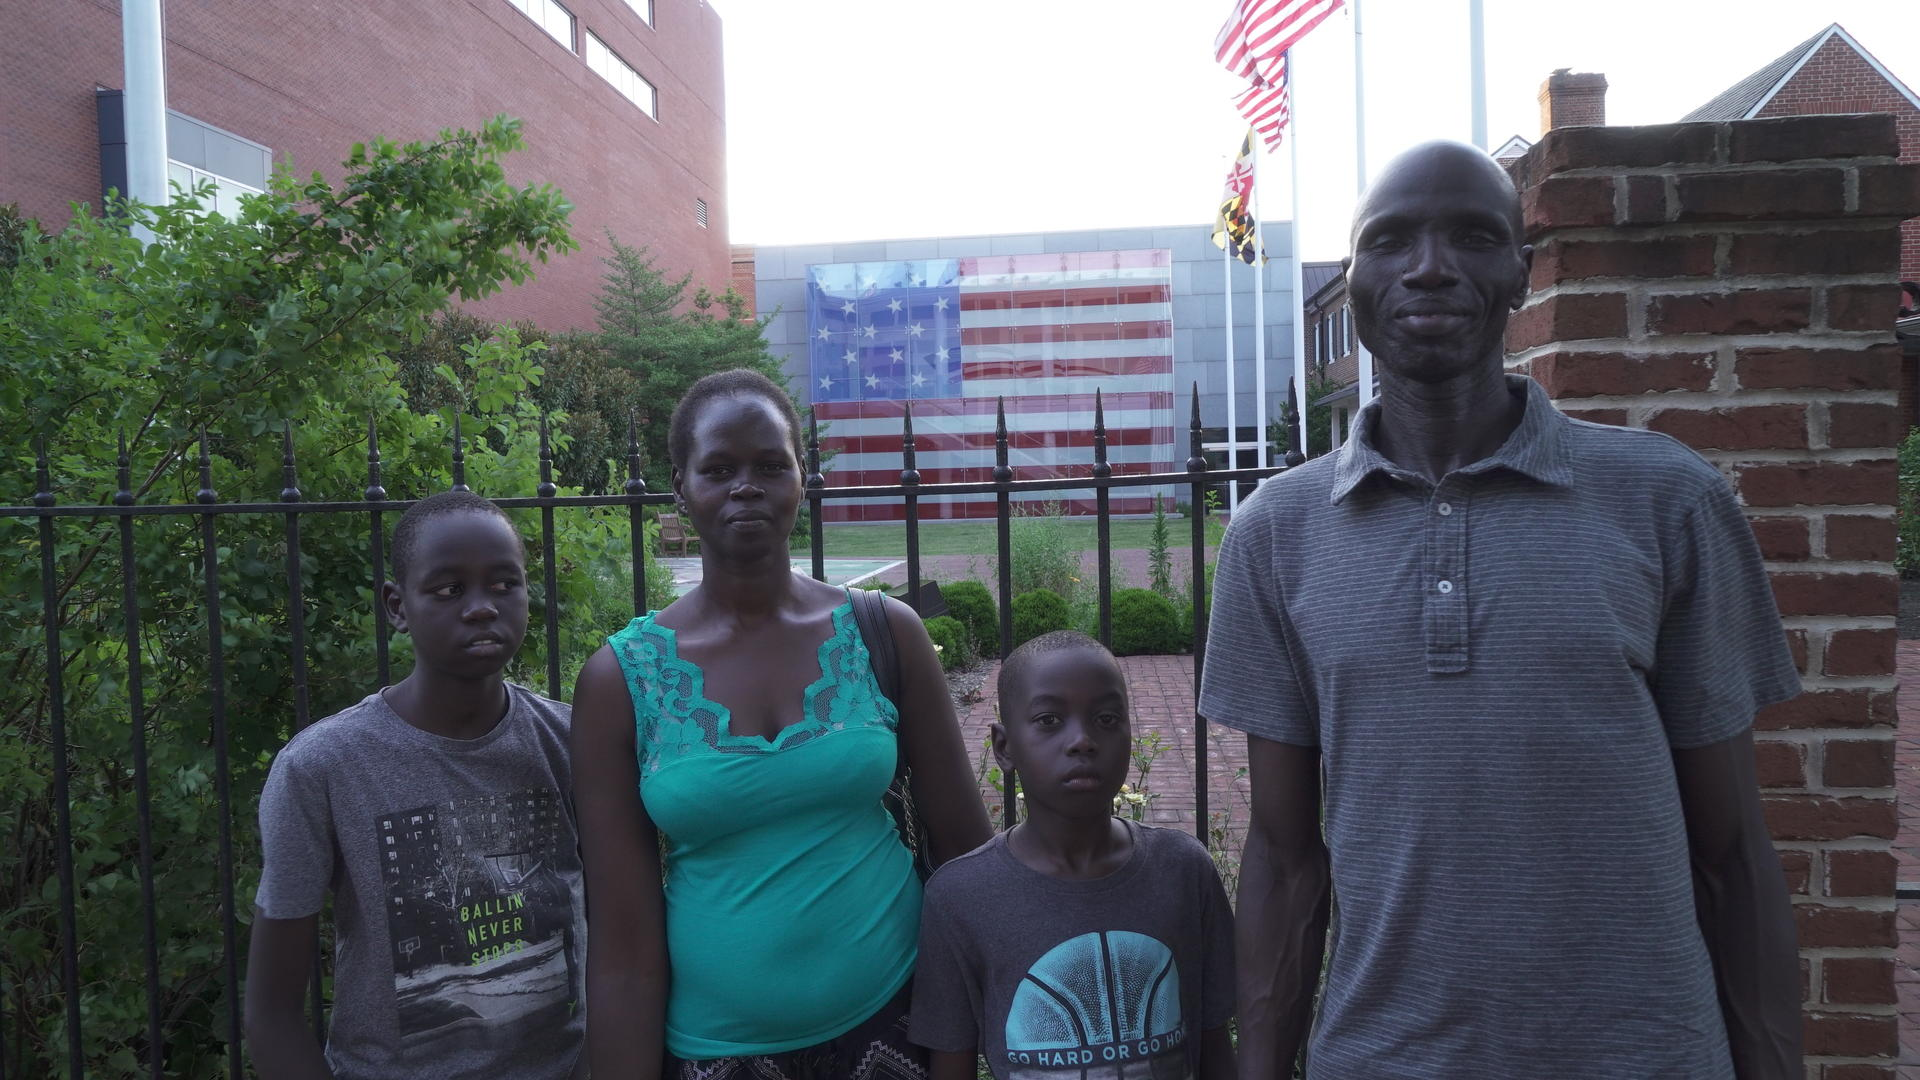 Timothy Cham and his family in Baltimore